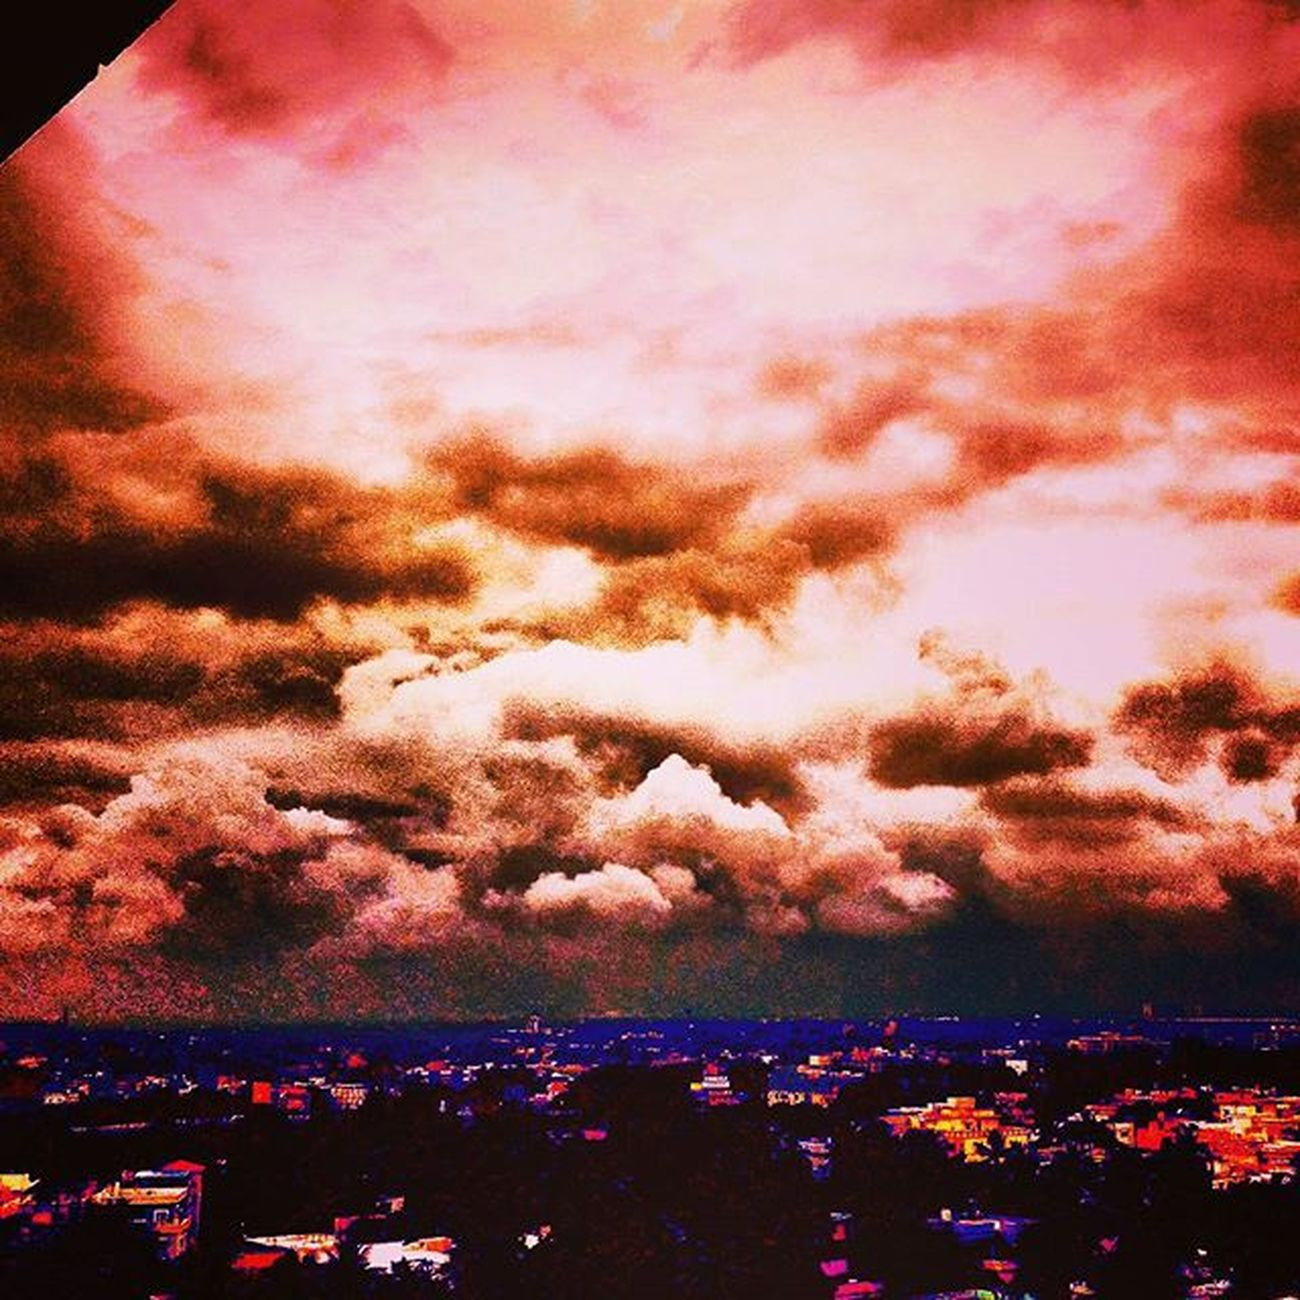 Clouds Cloudscape Cloudporn Sky Skyscape Skylovers Stormy Thunderstorm Stormontheway Throwbackthursdays Oldpic Edited Eerie Calmbeforethestorm Onceuponatime Alongtimeago Instaclouds Instasky InstaThrowback Instadaily Amateurphotographer  Camerateur Indianphotographersclub _photographic_world